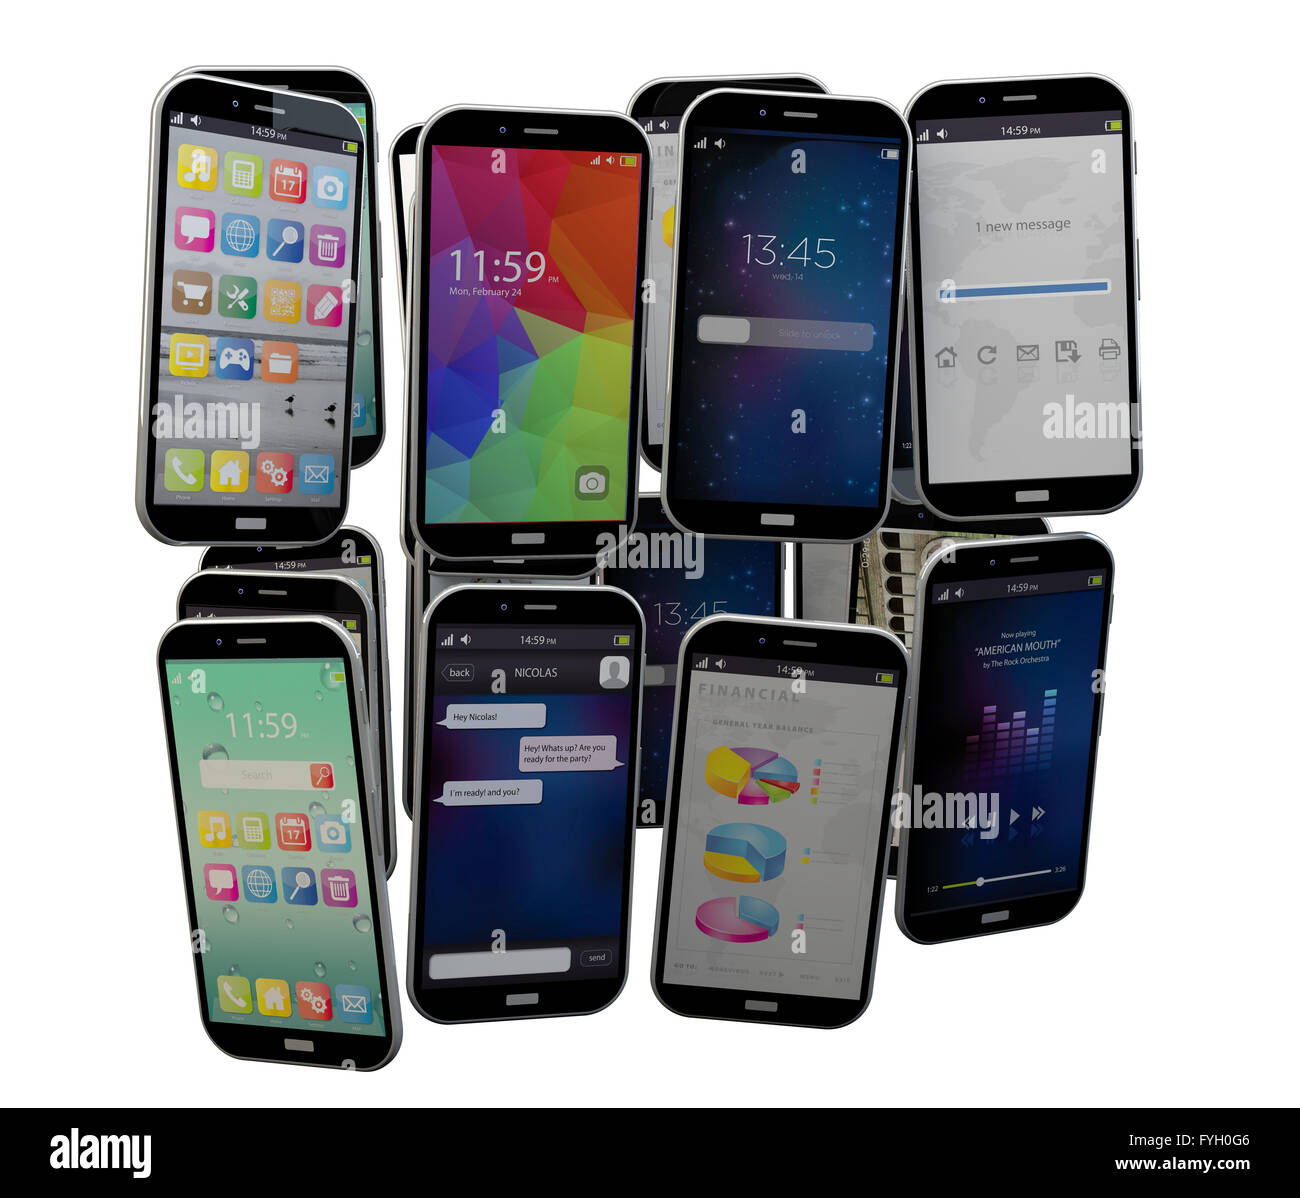 render of an isolated smartphones group - Stock Image